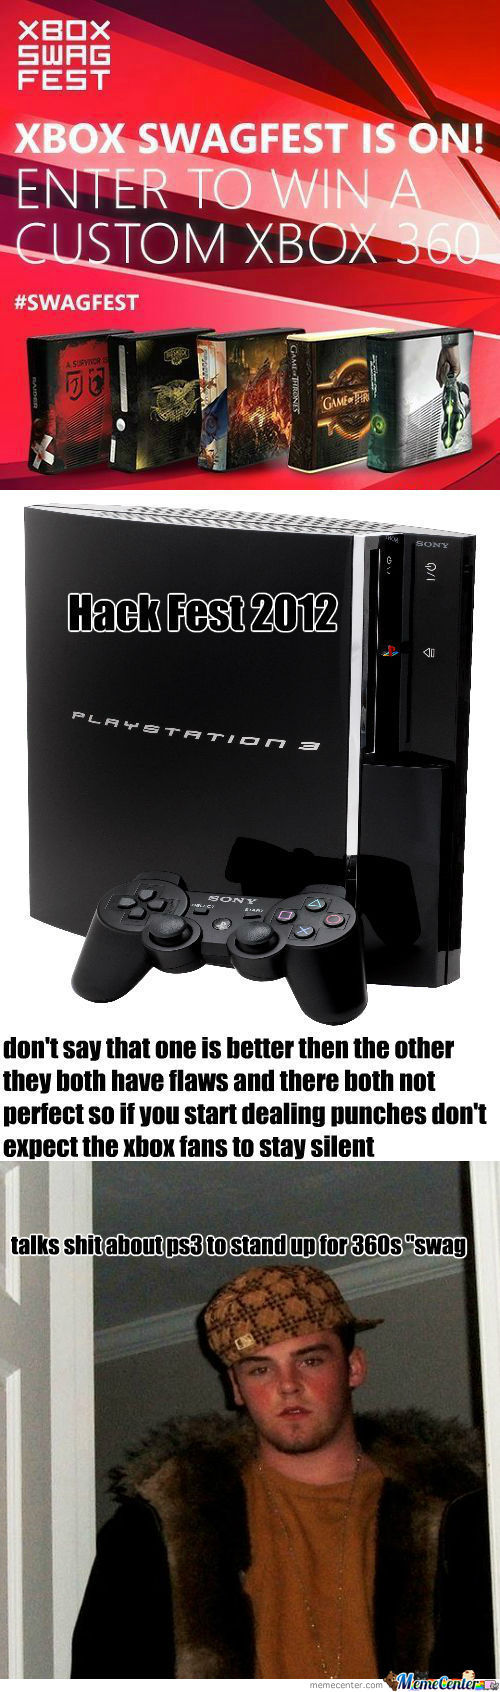 [RMX] [RMX] That's Why Playstation is better